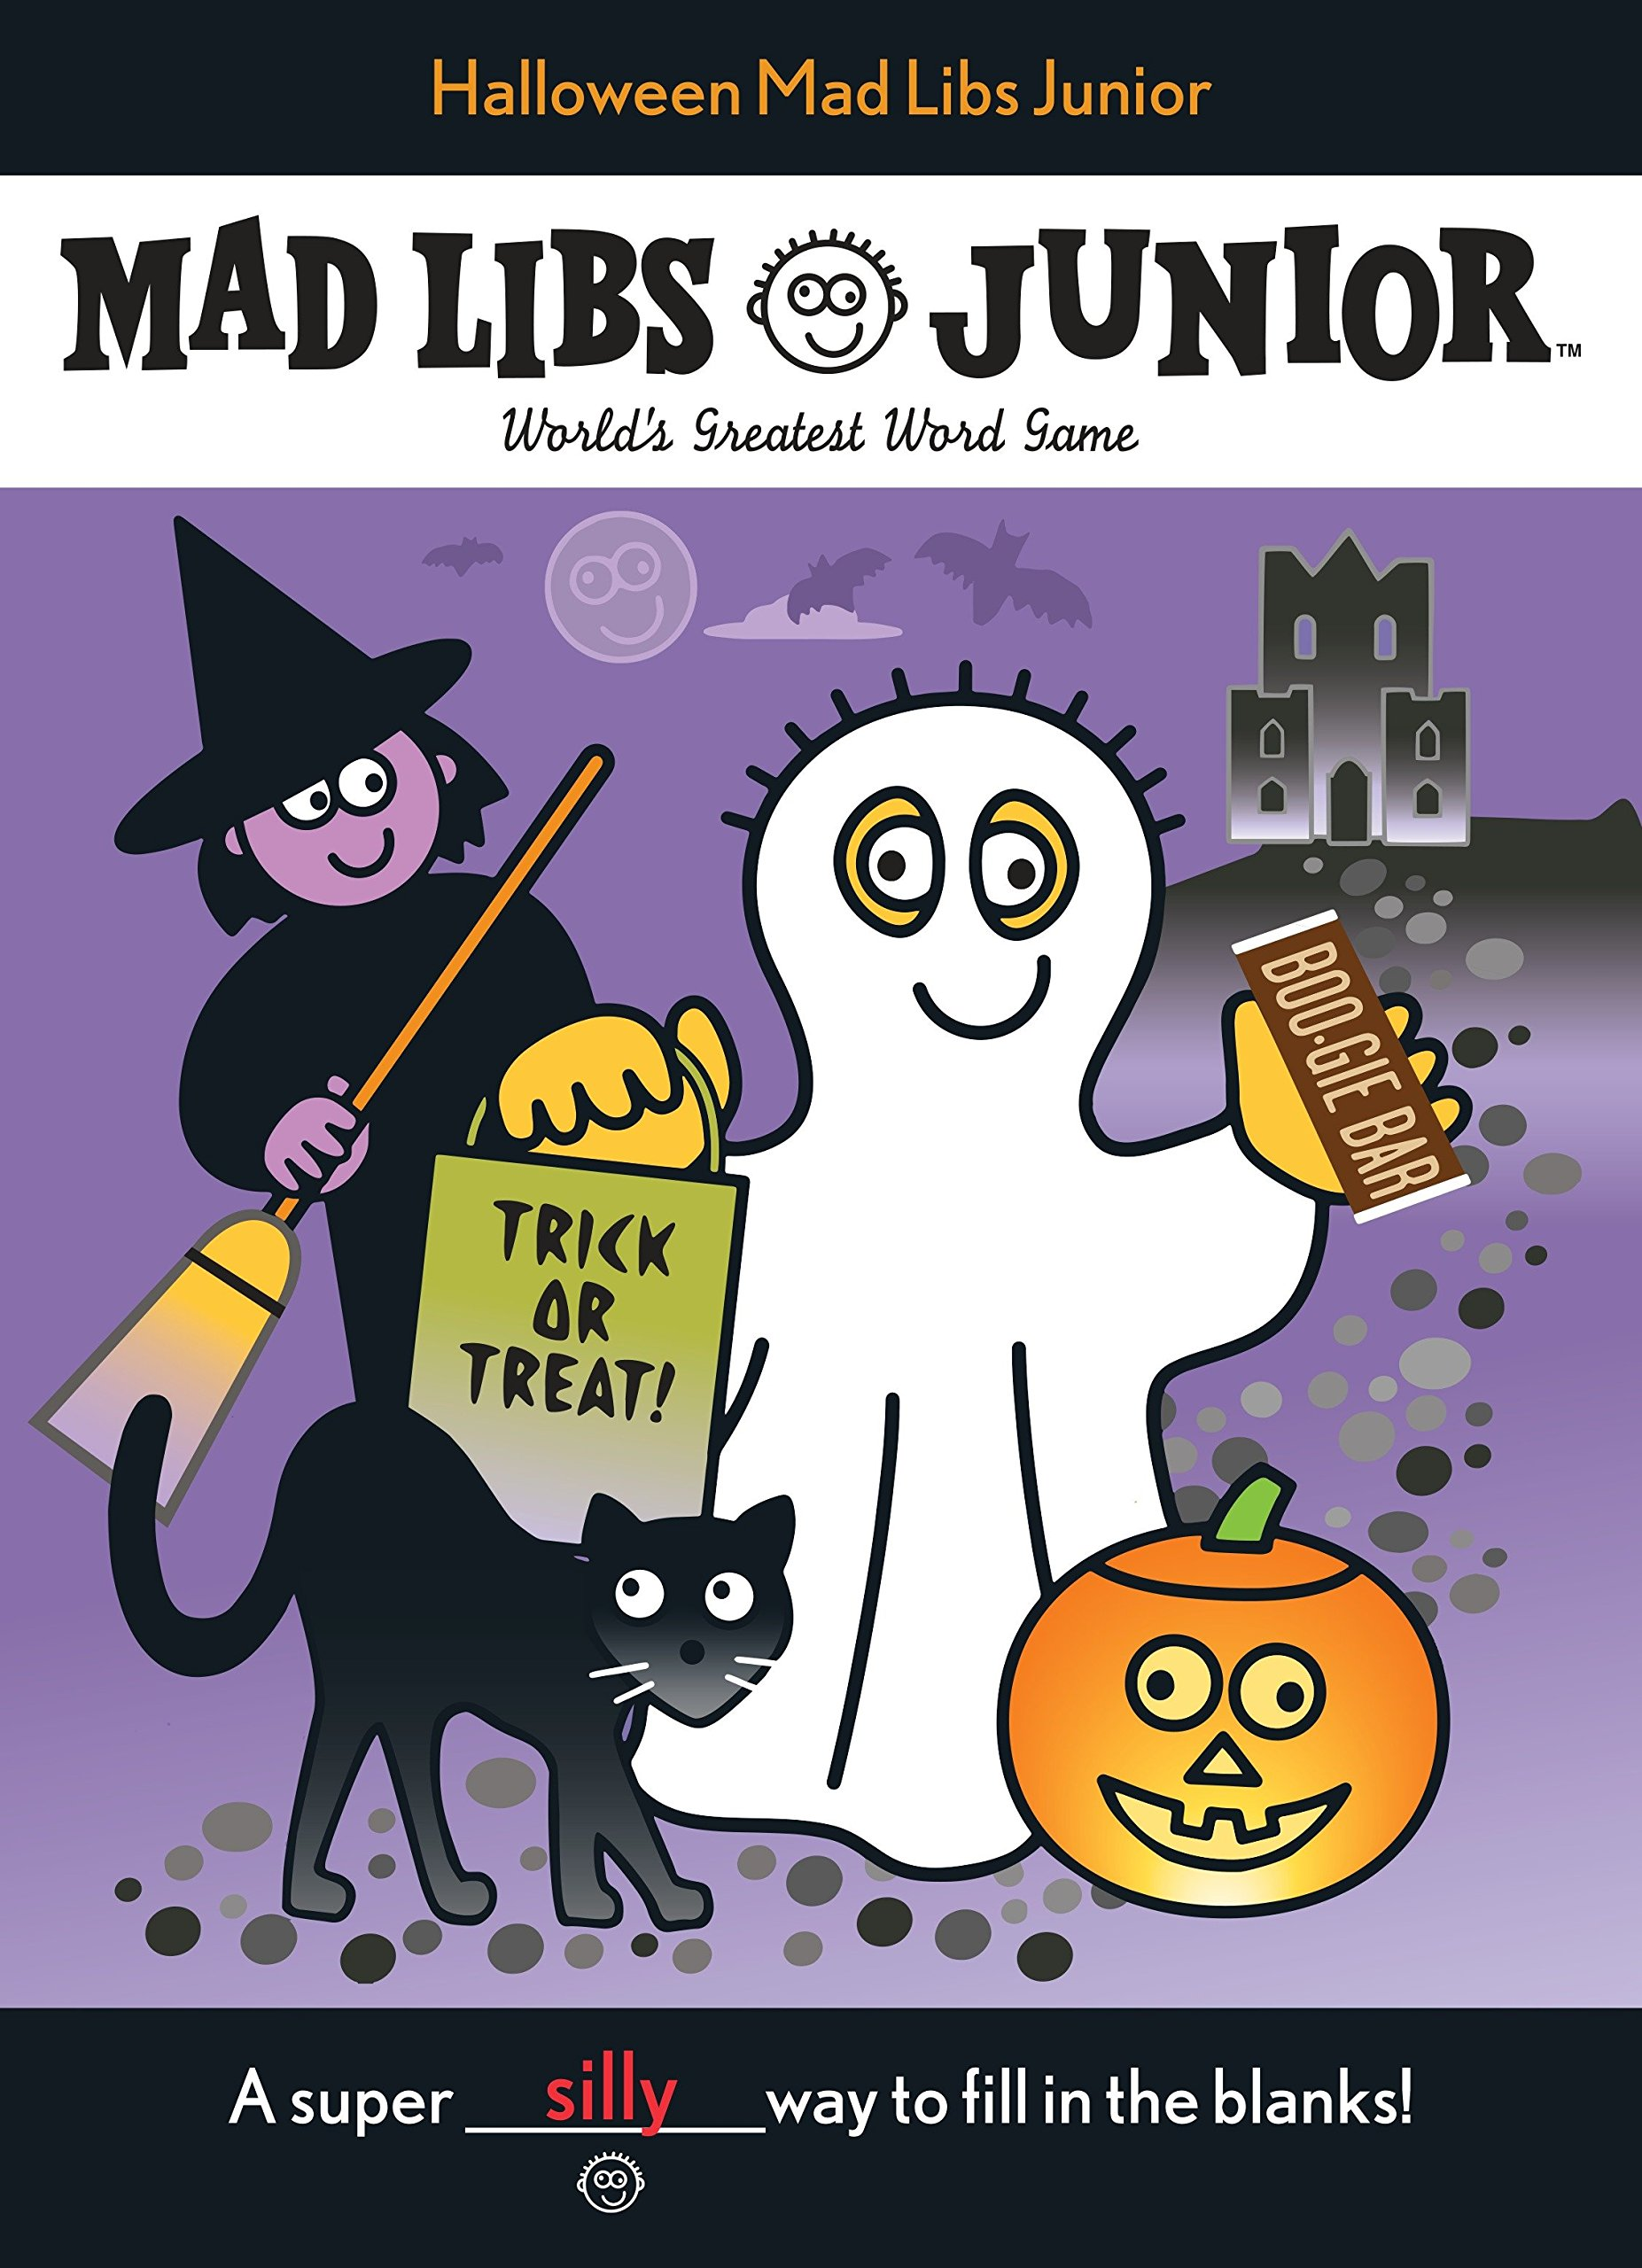 photo about Halloween Mad Libs Printable Free identified as Halloween Nuts Libs Junior: Roger Charge, Leonard Stern